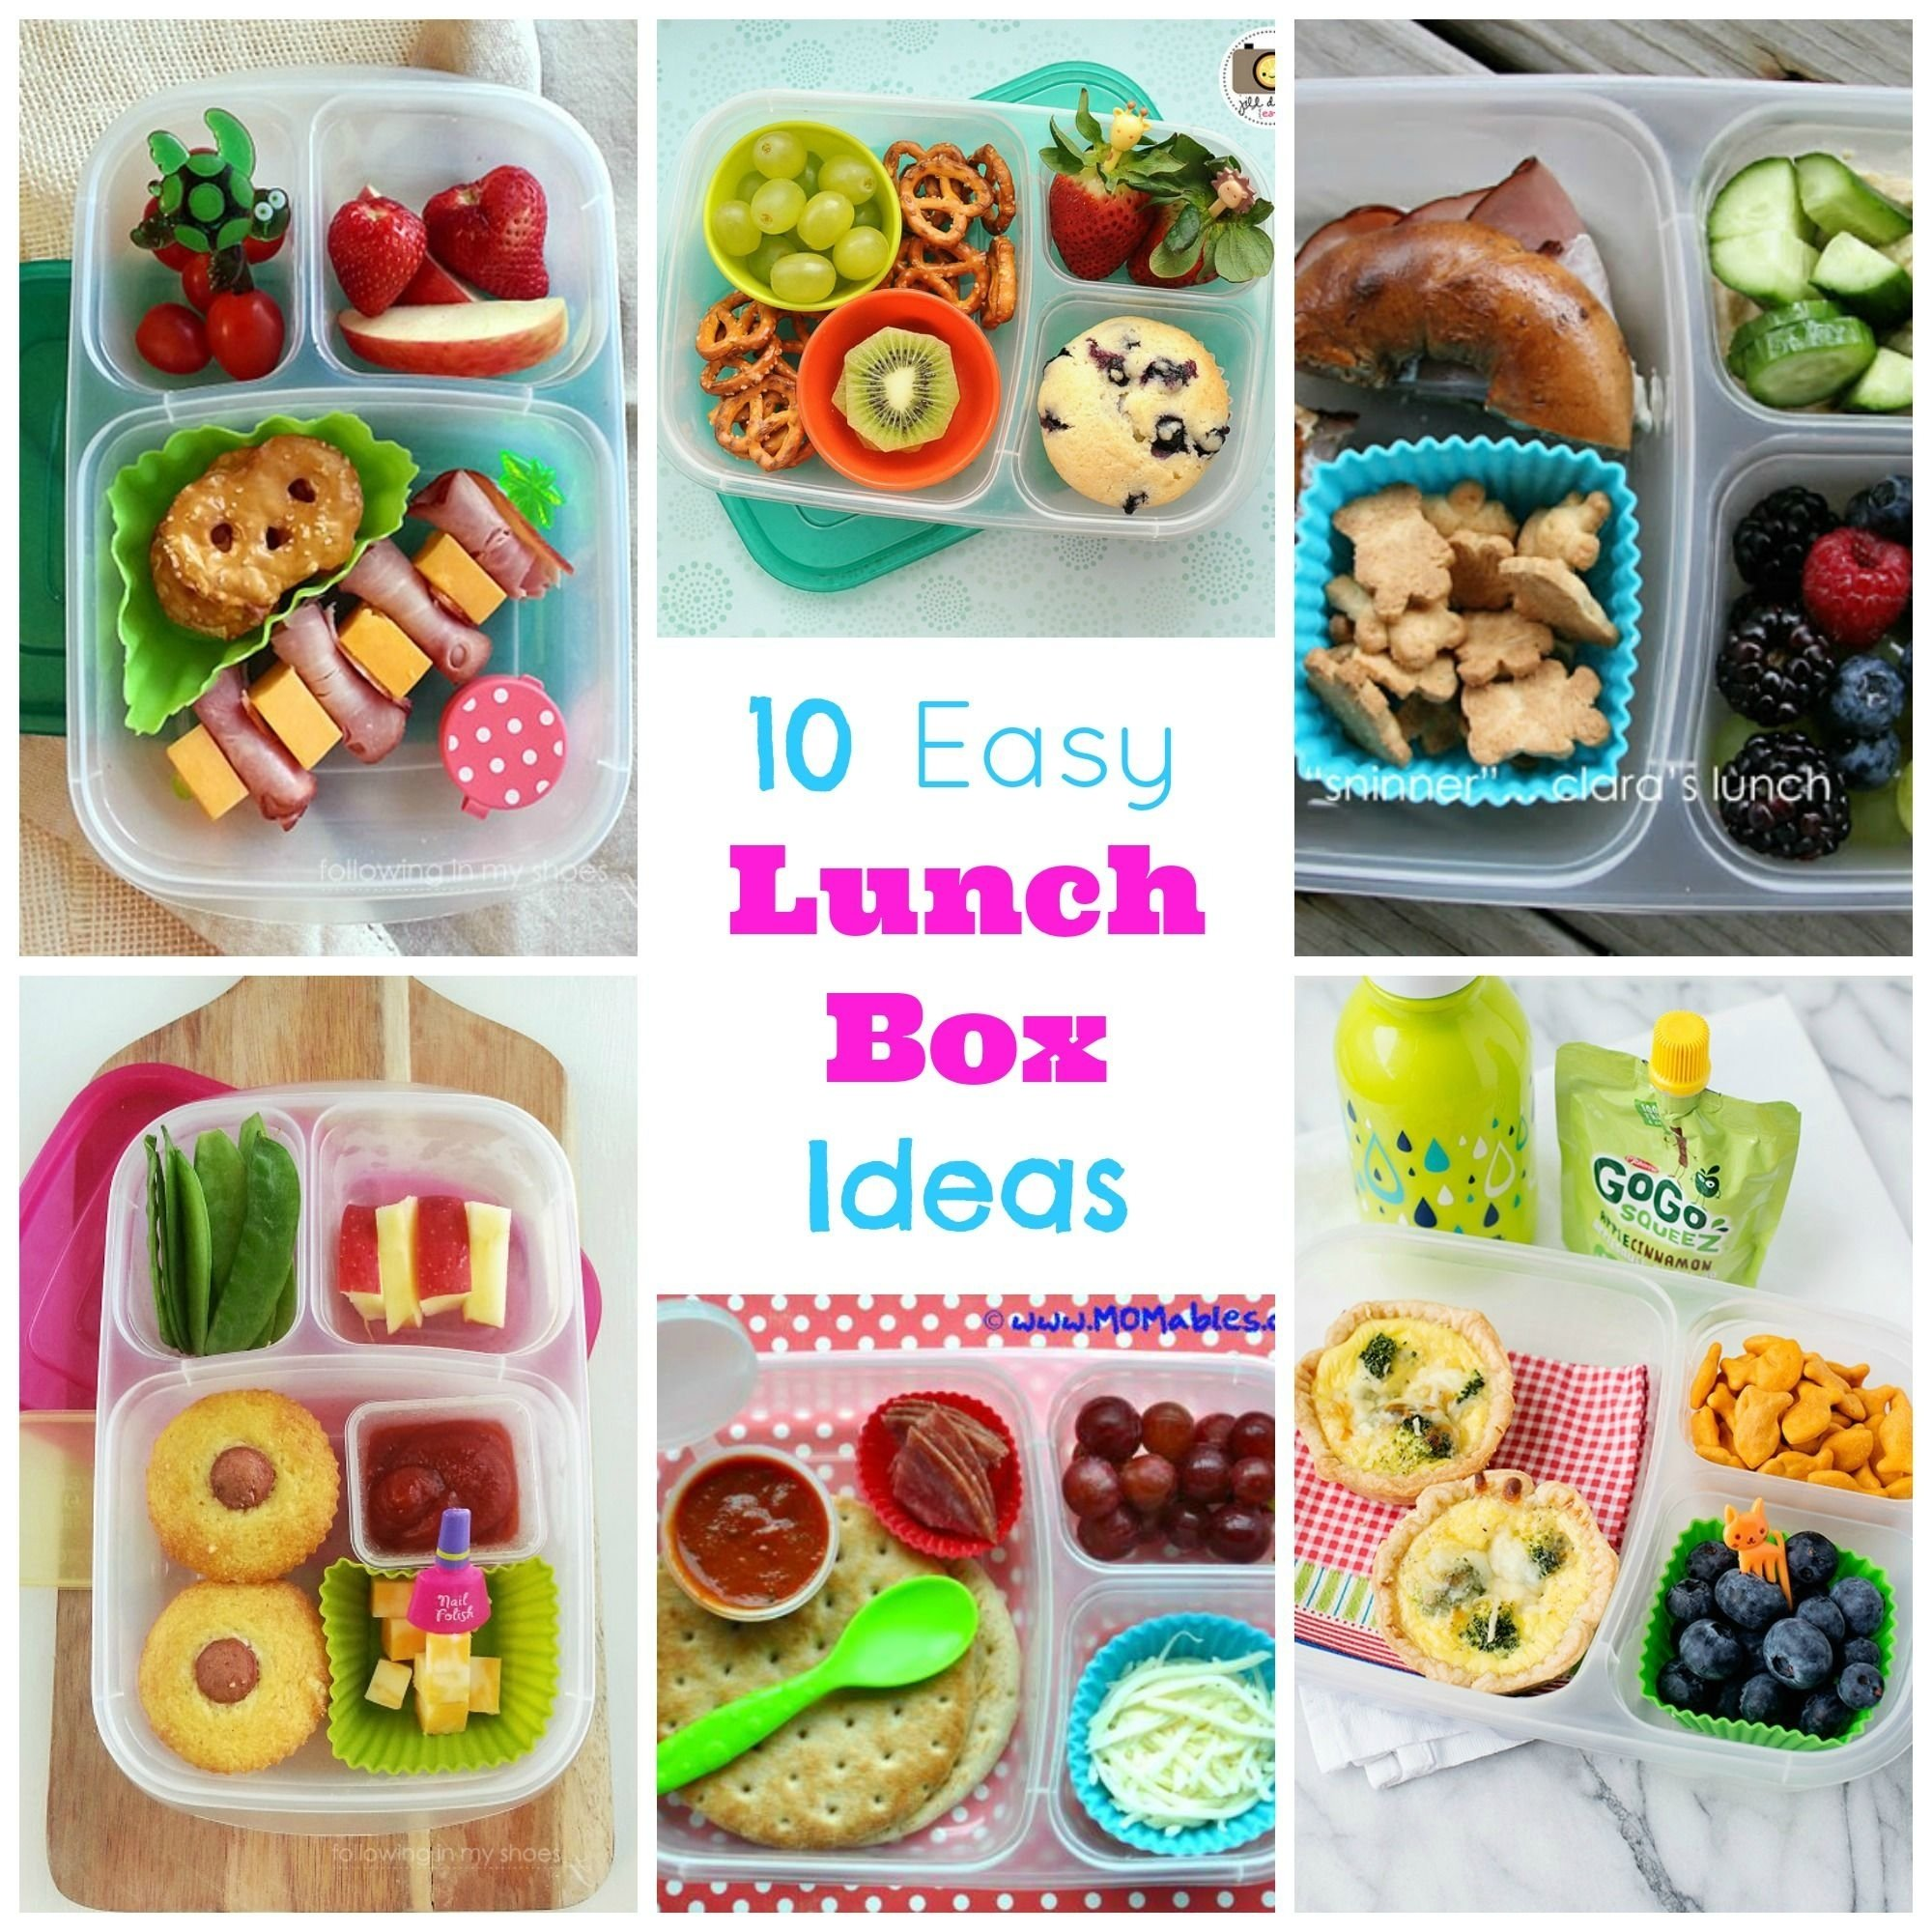 10 Cute Lunch Box Ideas For Picky Eaters 10 easy lunch box ideas lunchbox ideas picky eaters and lunches 1 2020